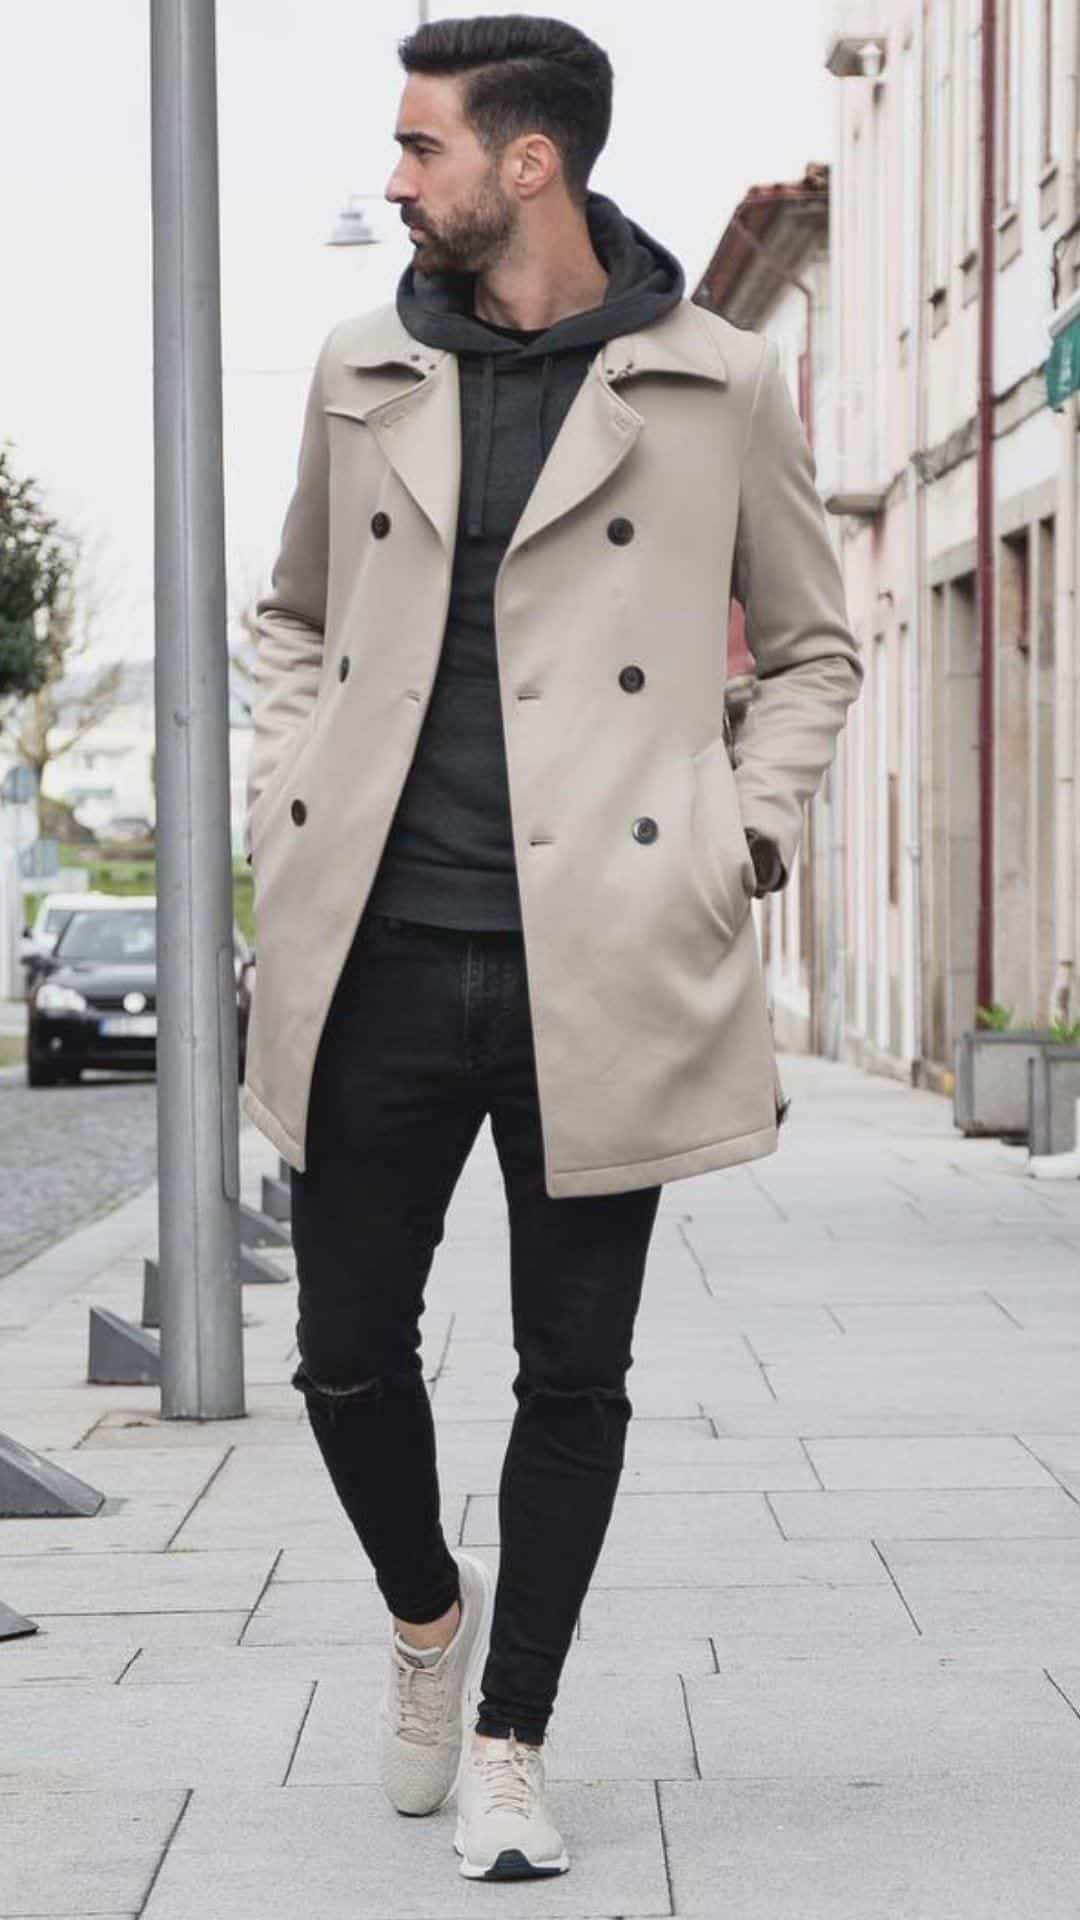 Cute Outfits for Skinny Guys - Styling Tips With New Trends